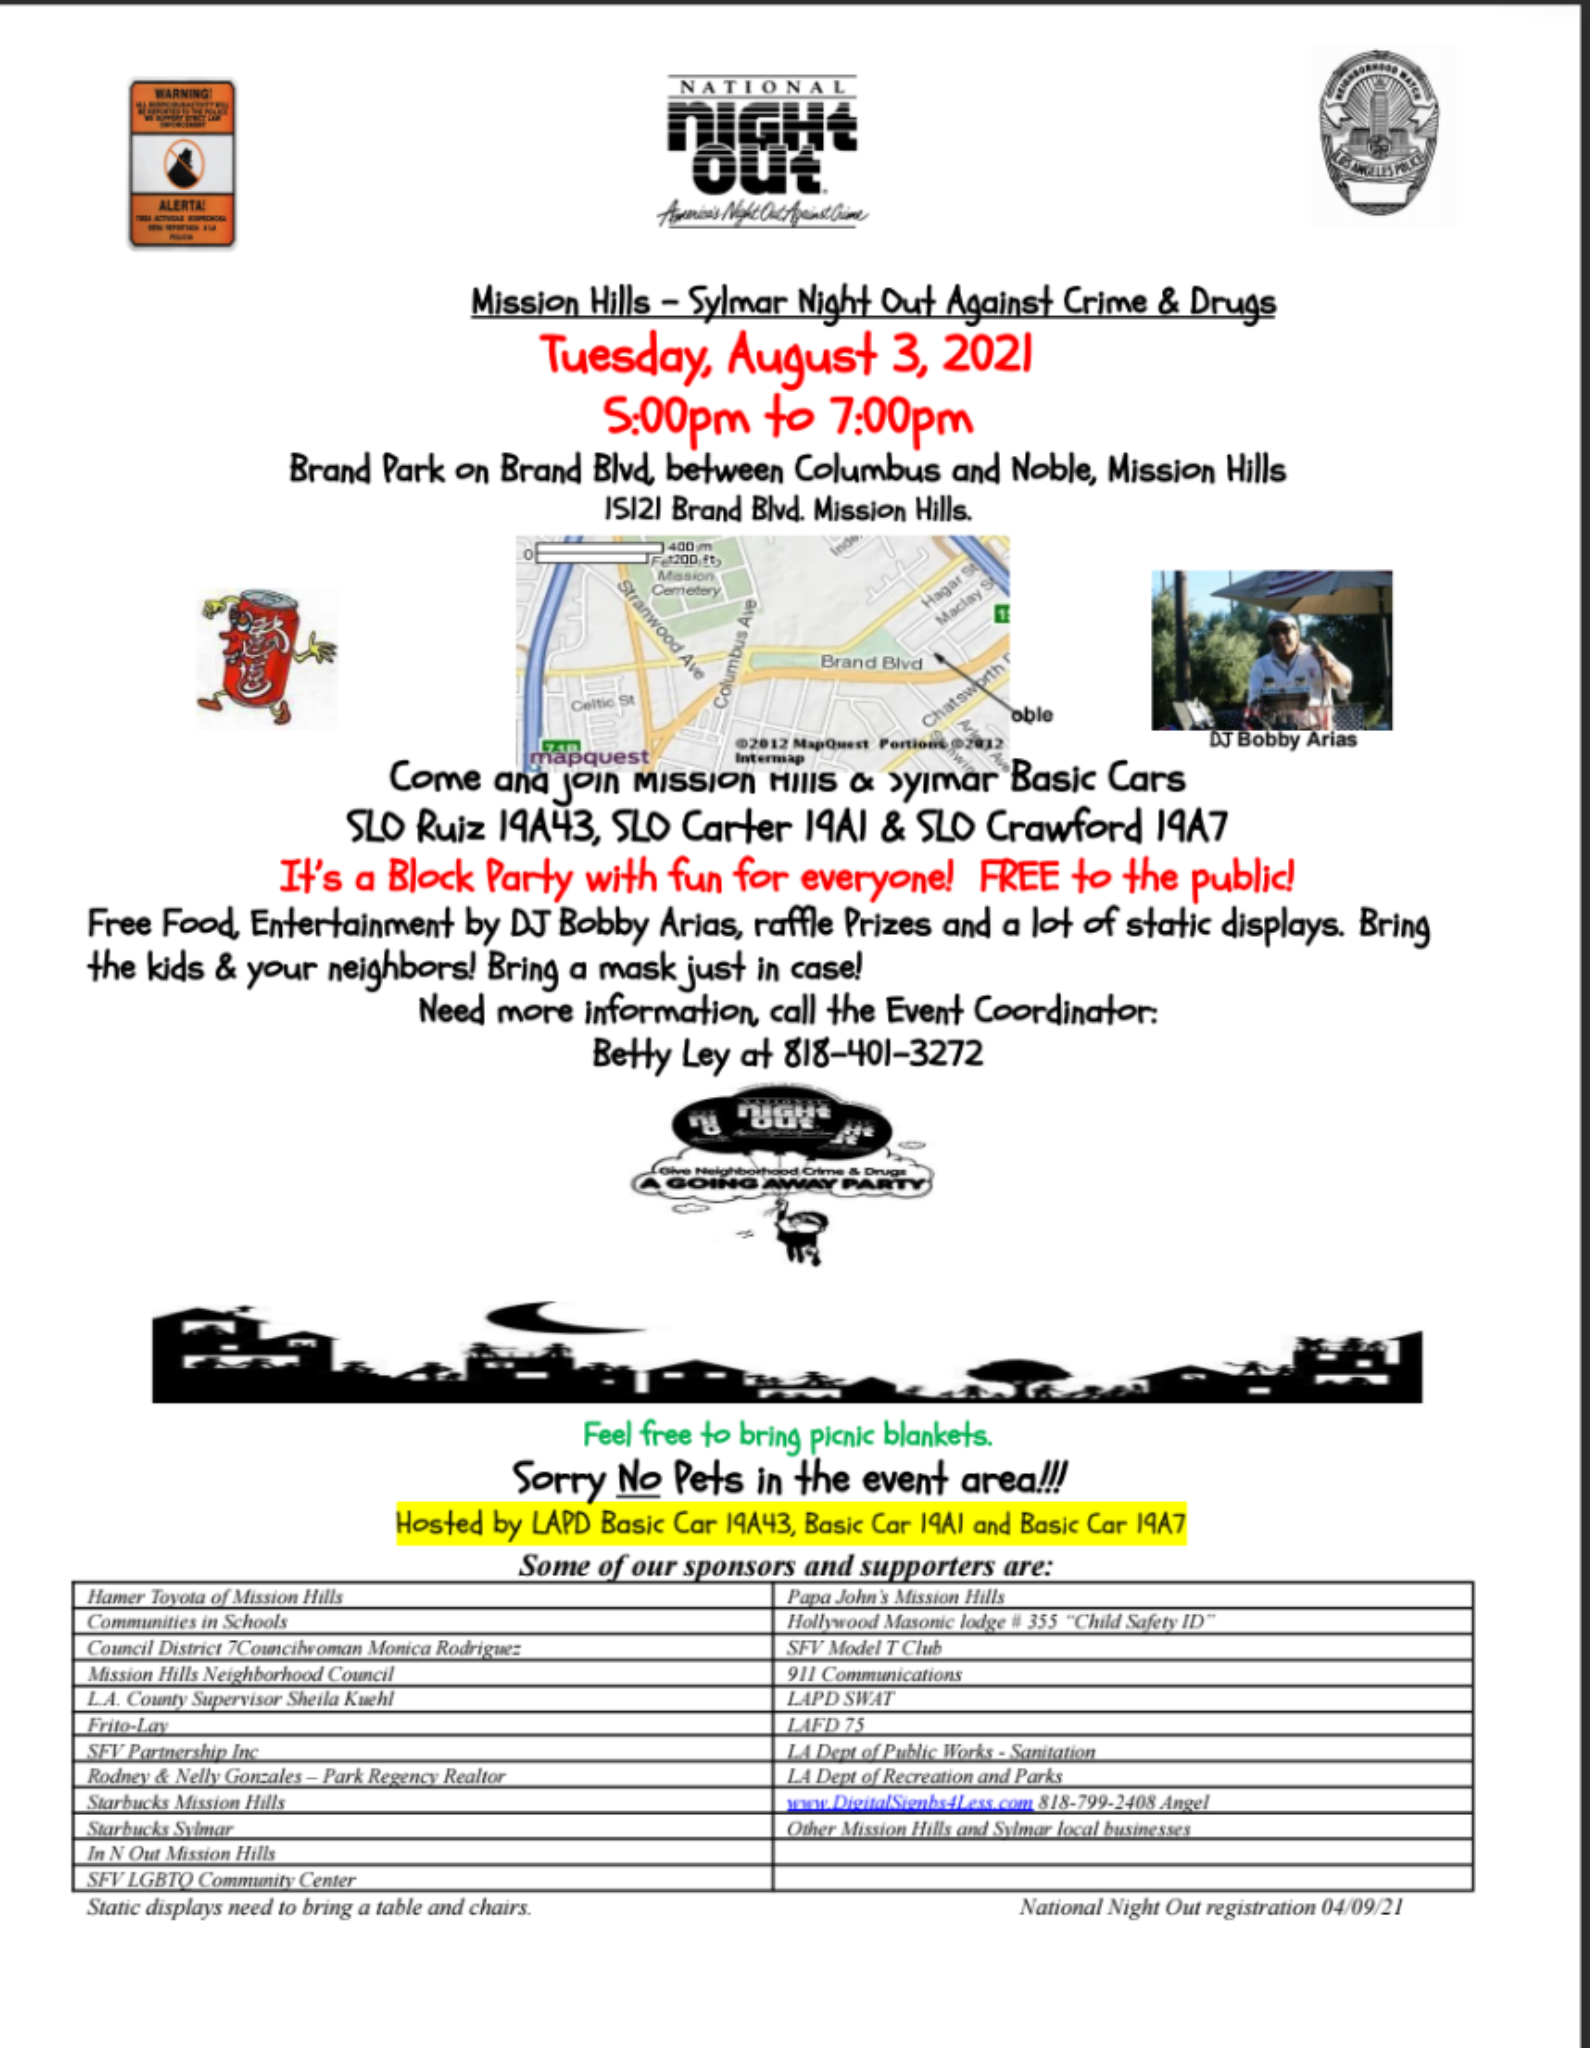 National Night Out Event